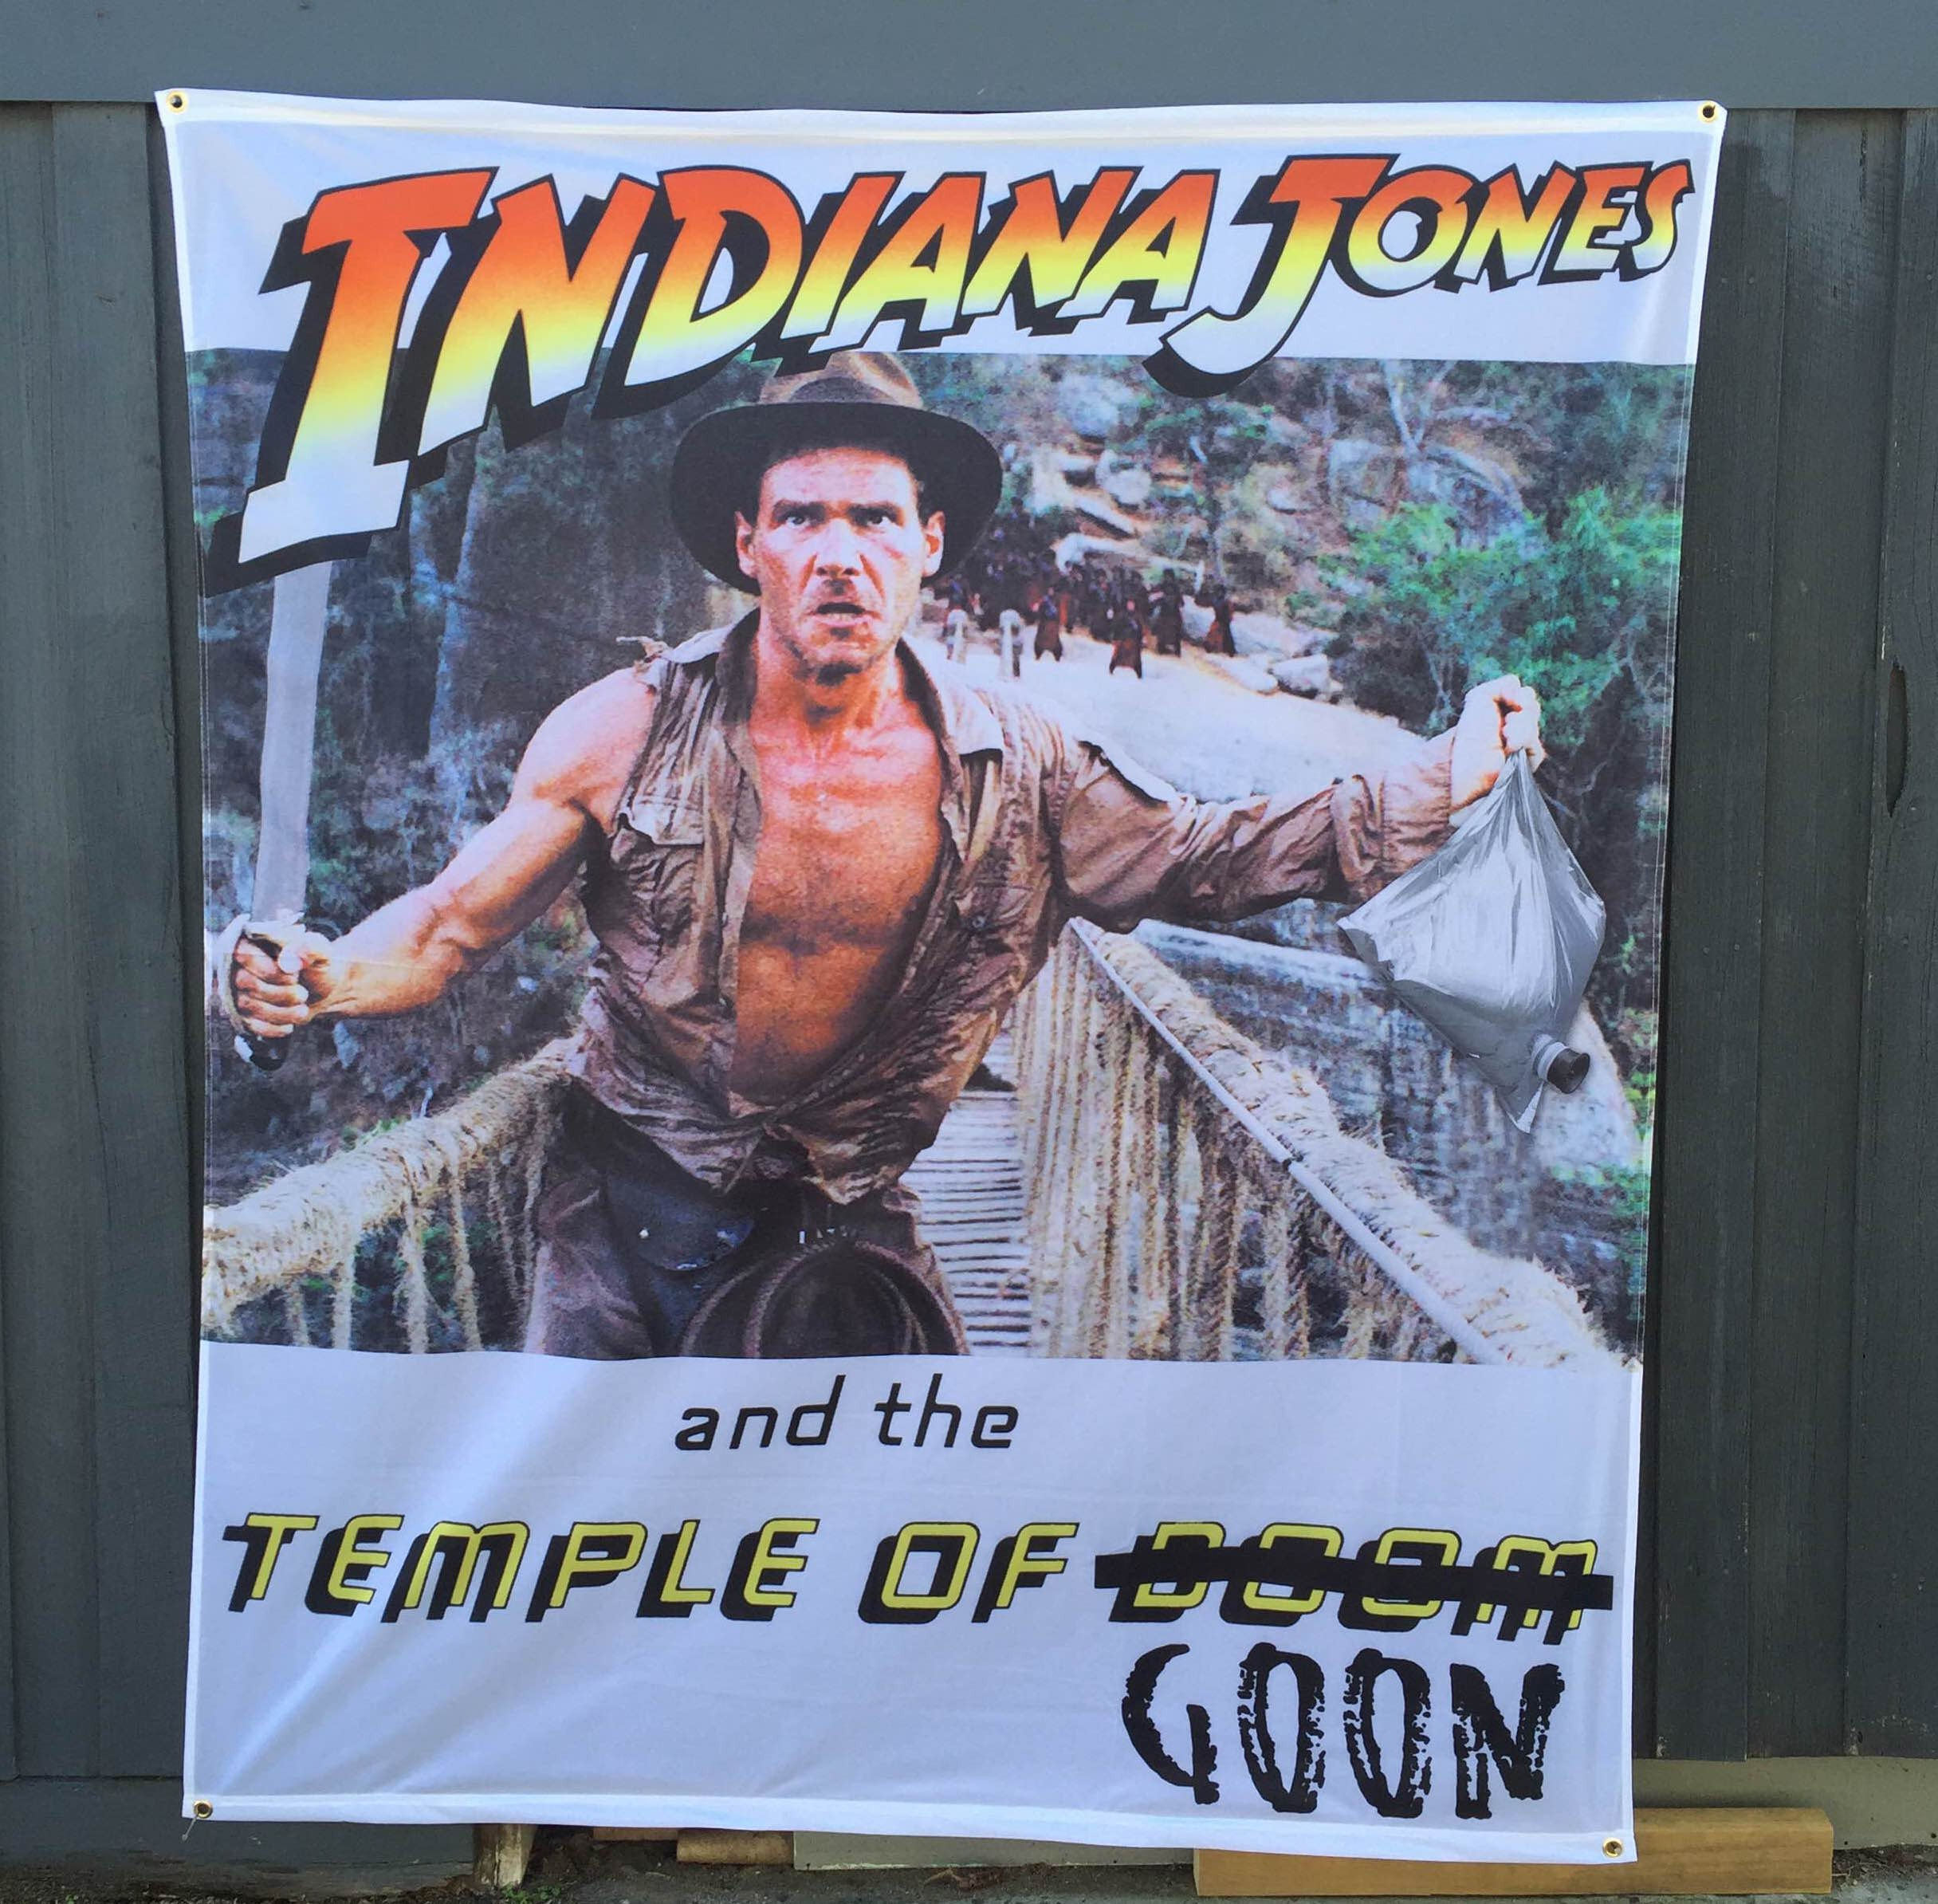 TEMPLE OF GOON WALL HANGING